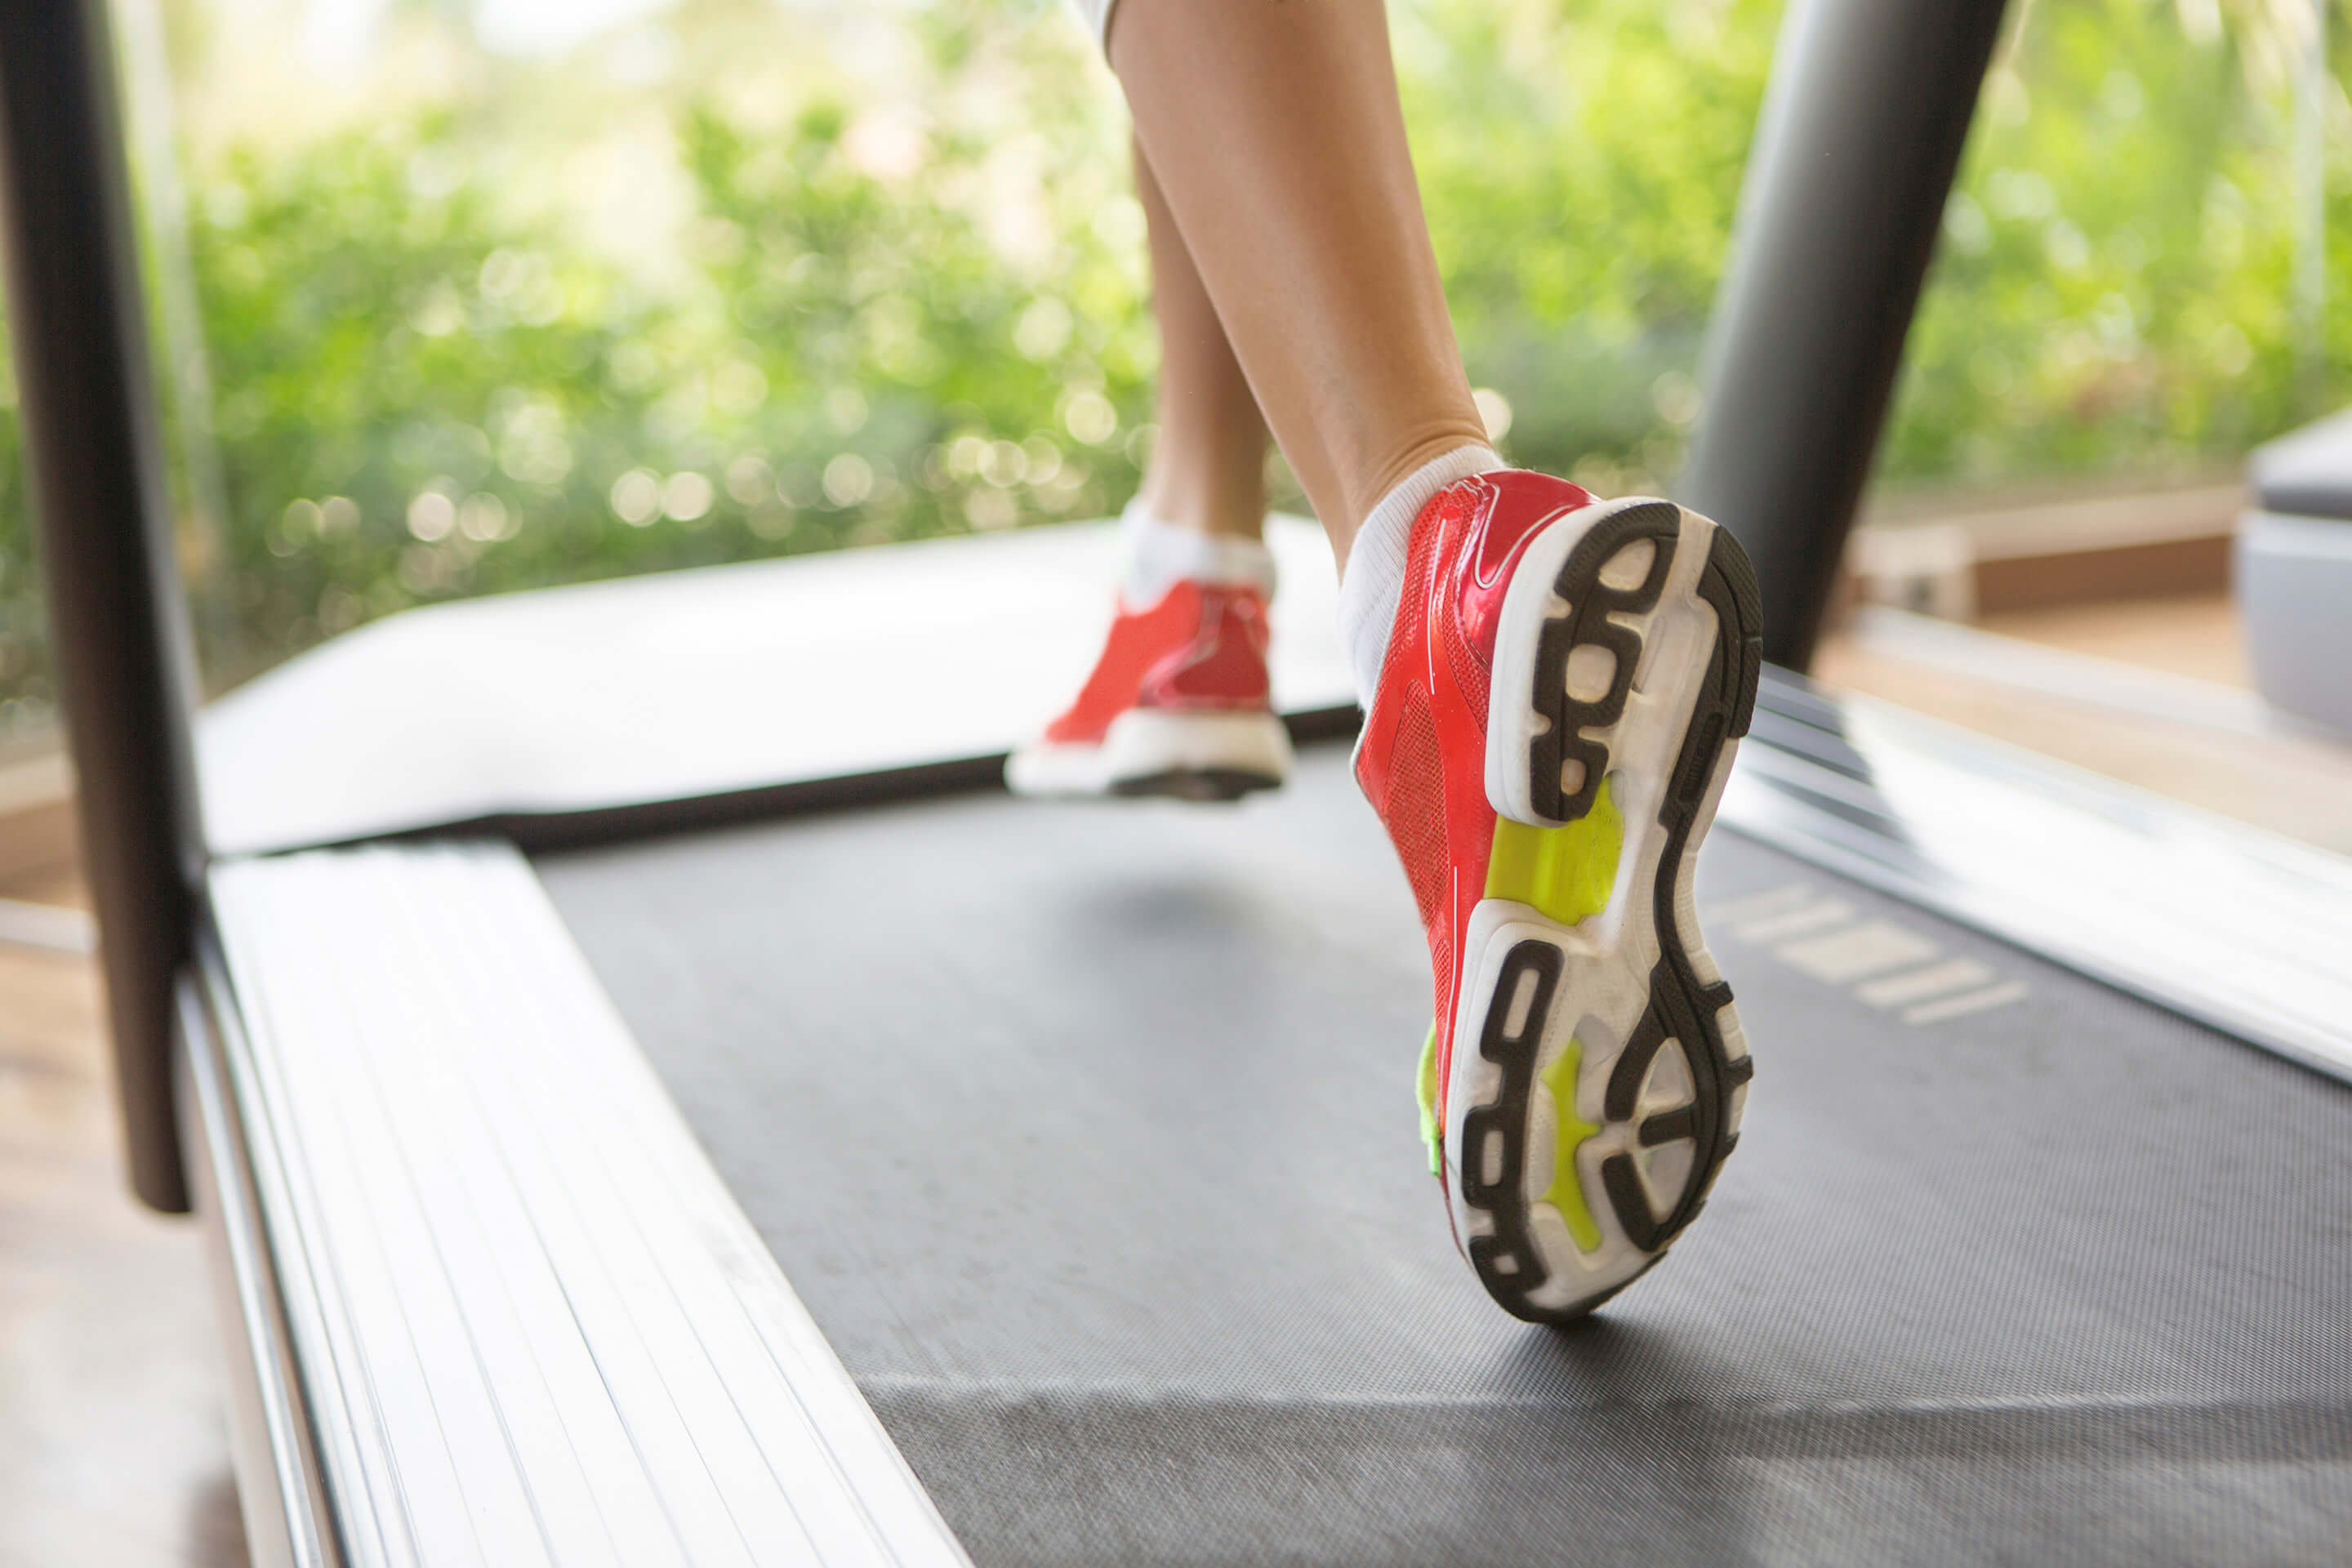 Centro Fitness with weights, ellipticals, treadmills and workout equipment